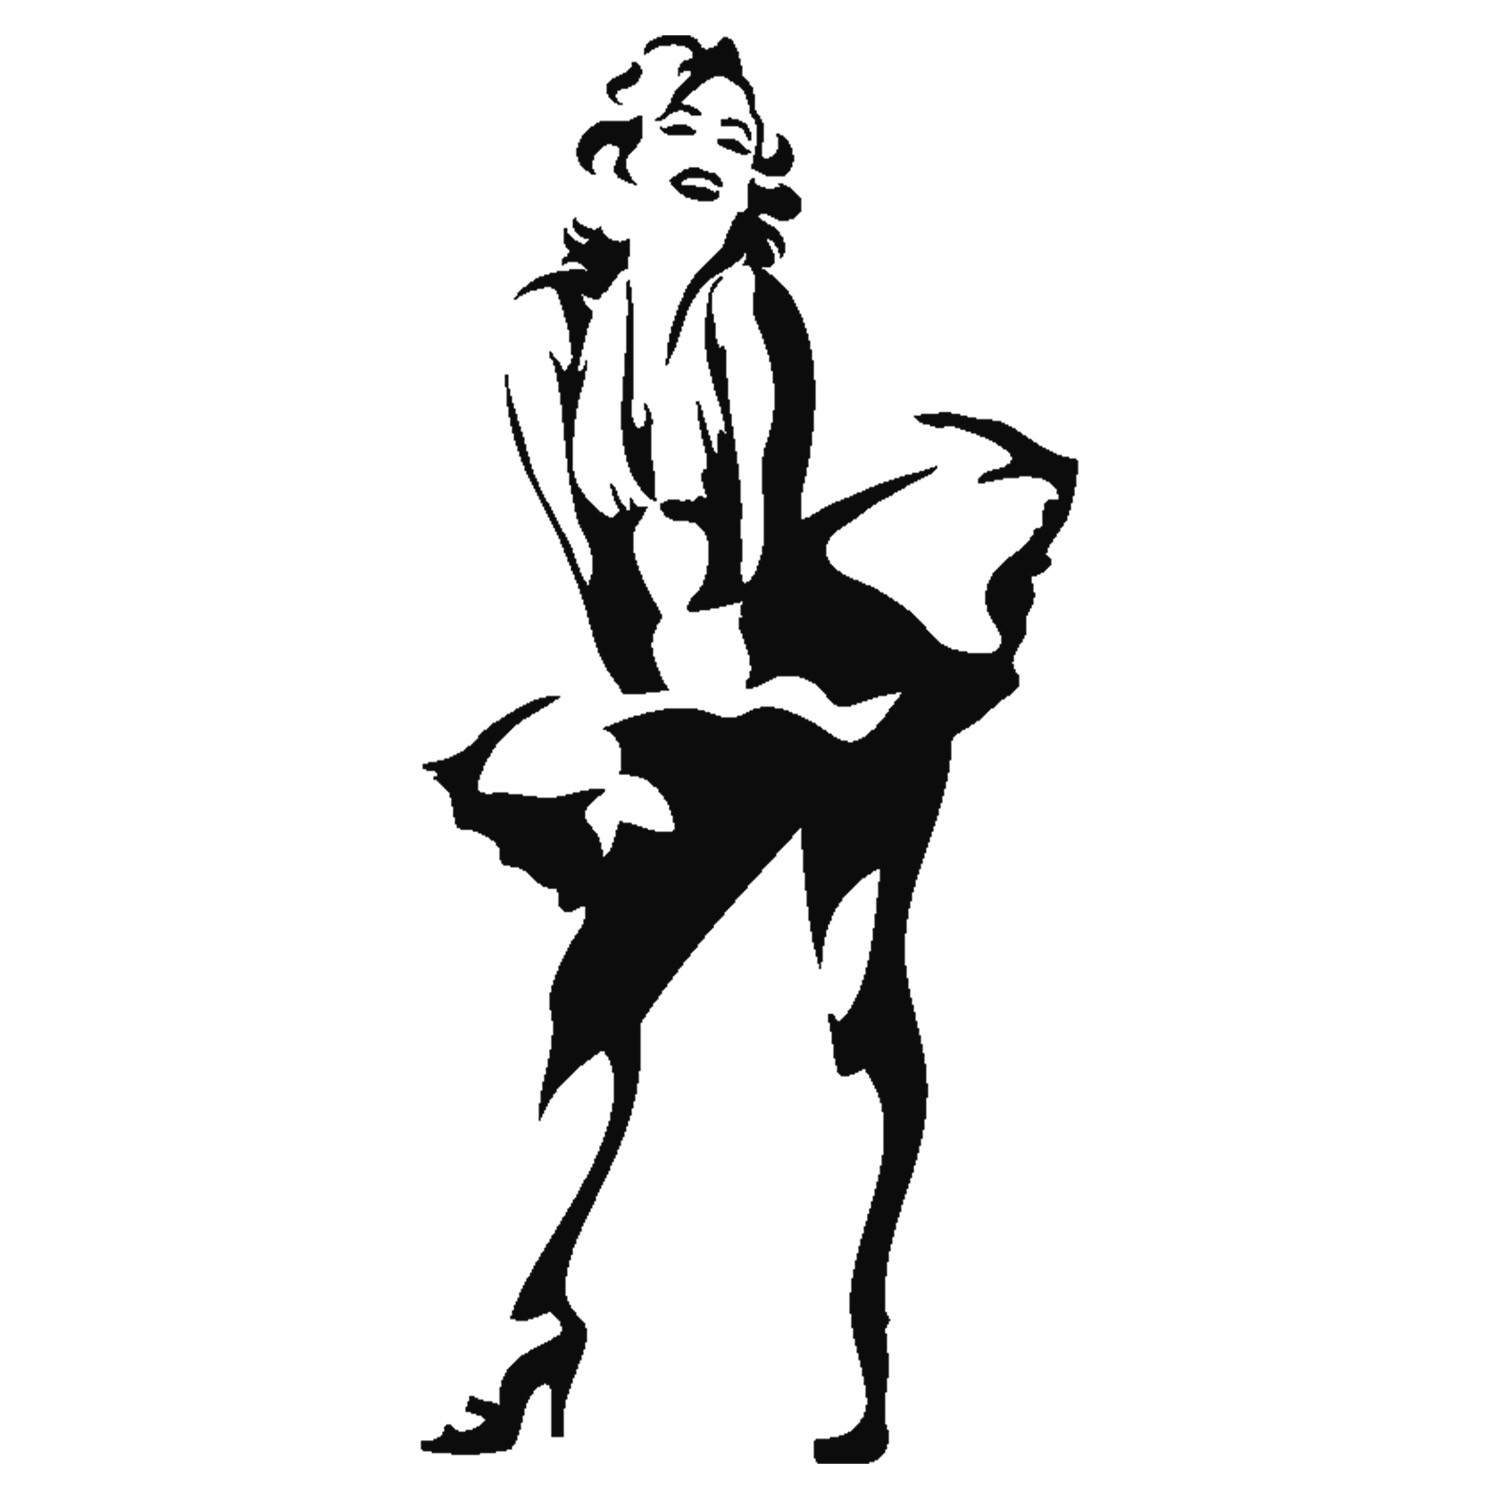 marilyn monroe silhouette at getdrawings com free for personal use rh getdrawings com marilyn monroe clipart marilyn monroe clipart